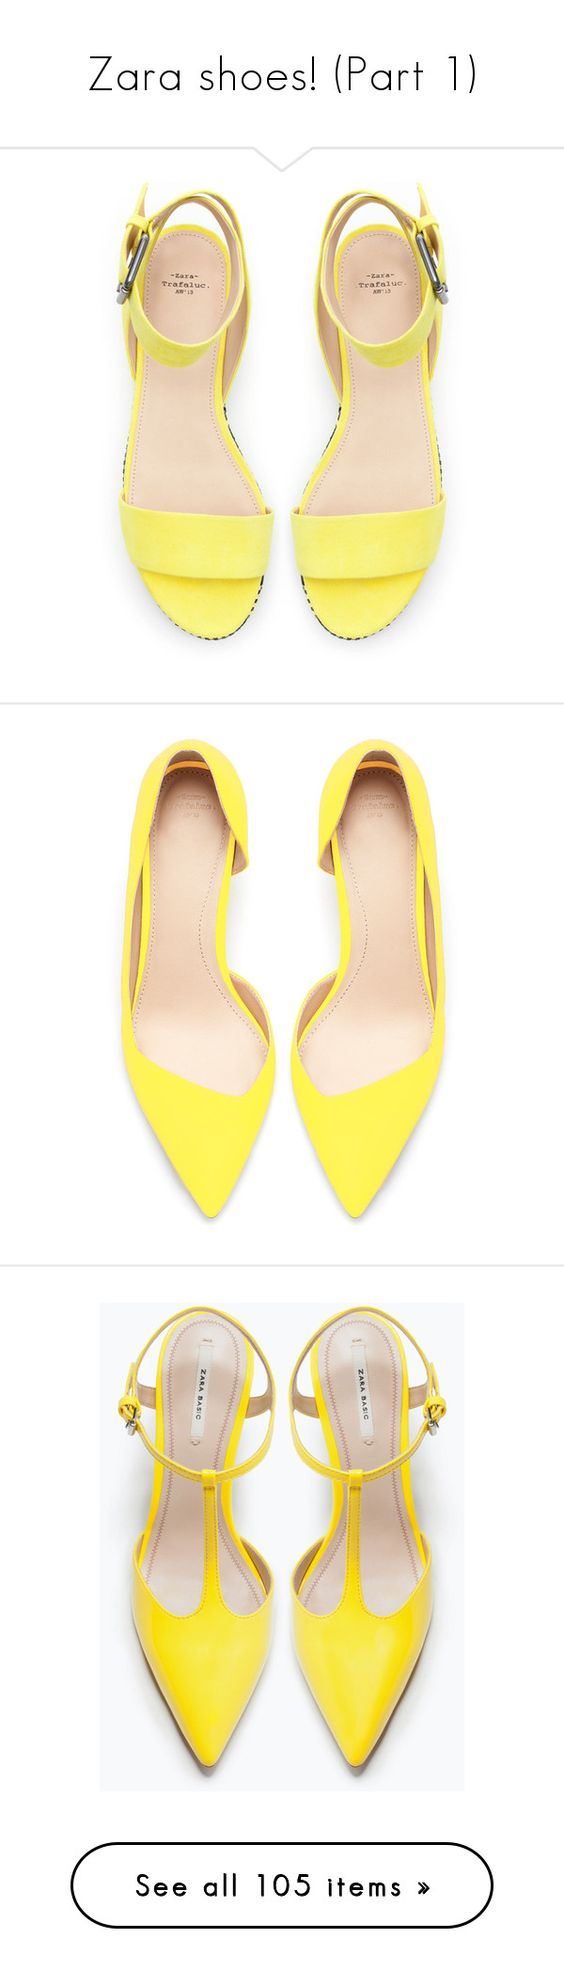 """""""Zara shoes! (Part 1)"""" by blueladybird ❤ liked on Polyvore featuring shoes, sandals, heels, flats, yellow, heeled flats, yellow sandals, heeled sandals, flat shoes and zara shoes"""